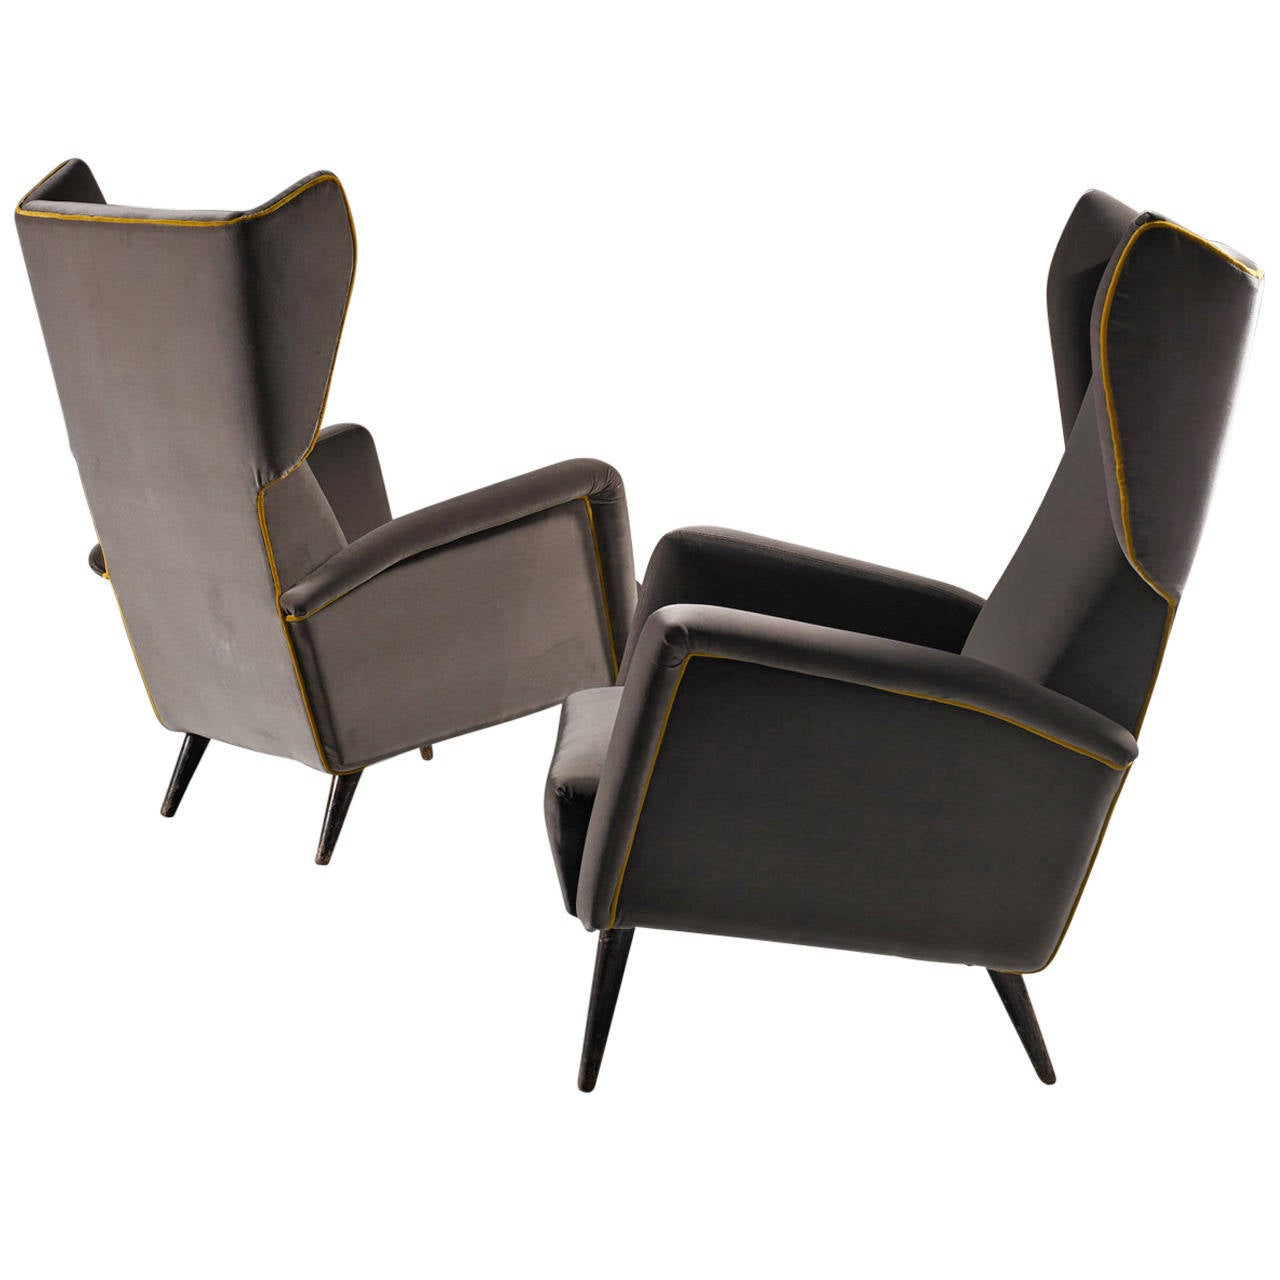 Bergere Armchairs By Gio Ponti At 1stdibs